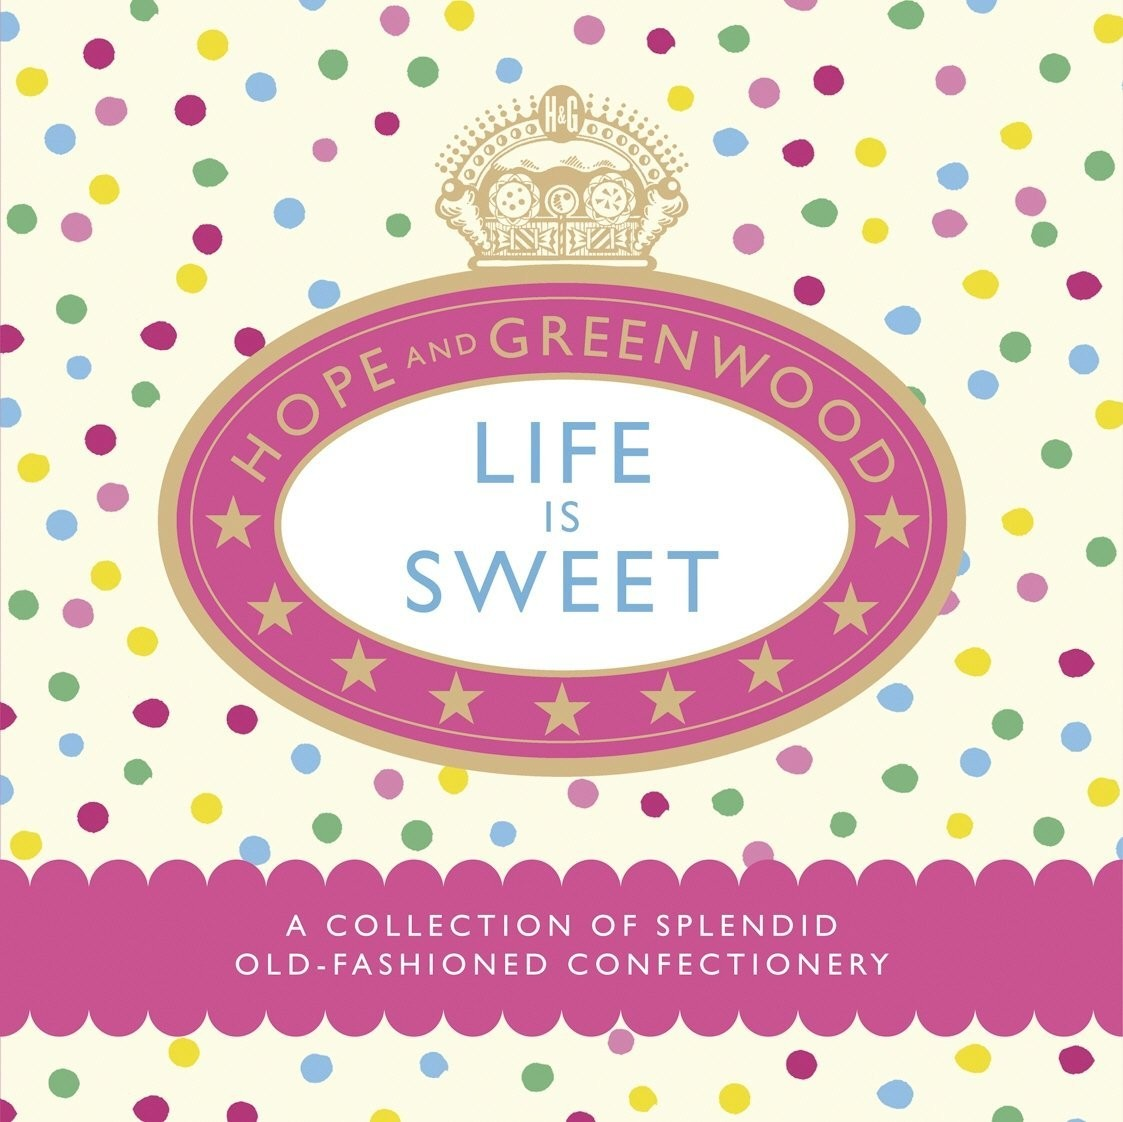 Life is Sweet: A Collection of Splendid Old-Fashioned Confectionery by Hope & greenwood